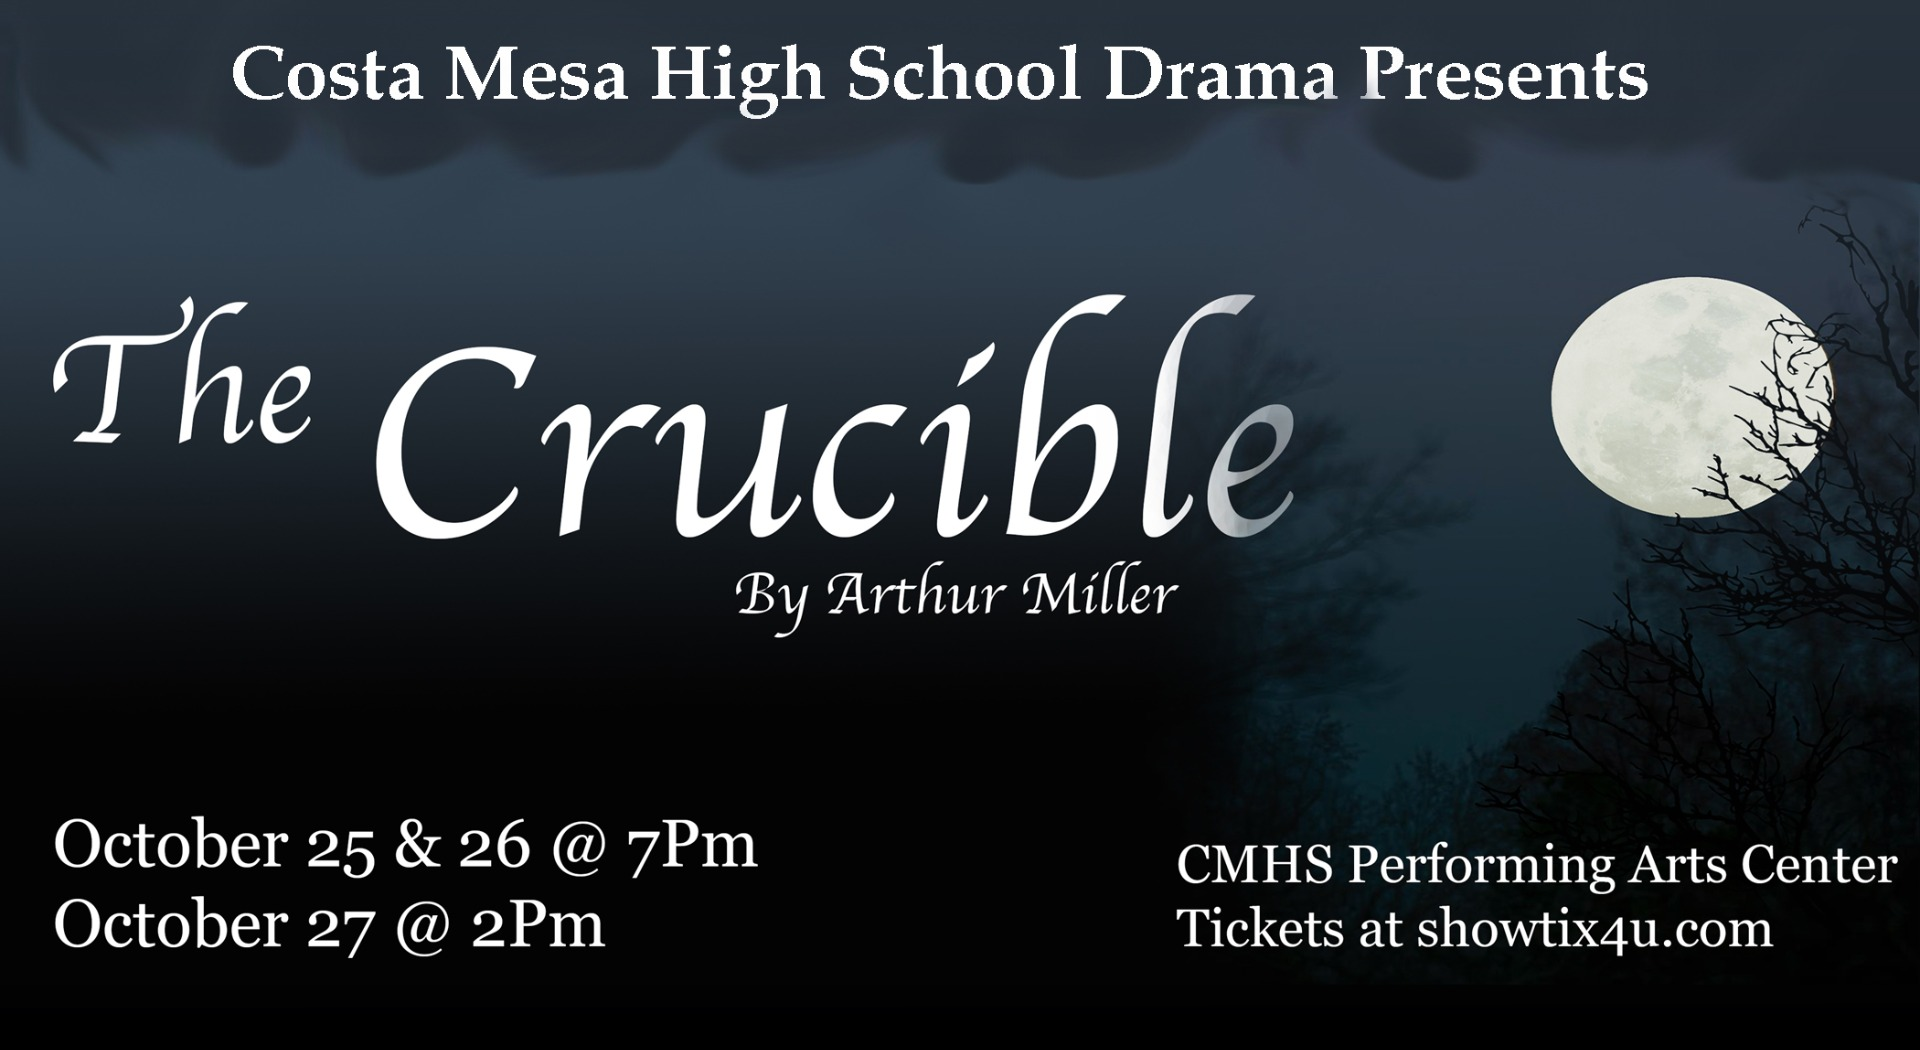 CMHS Drama Presents The Crucible, October 25 & 26 @ 7 pm, October 27 @ 2 pm